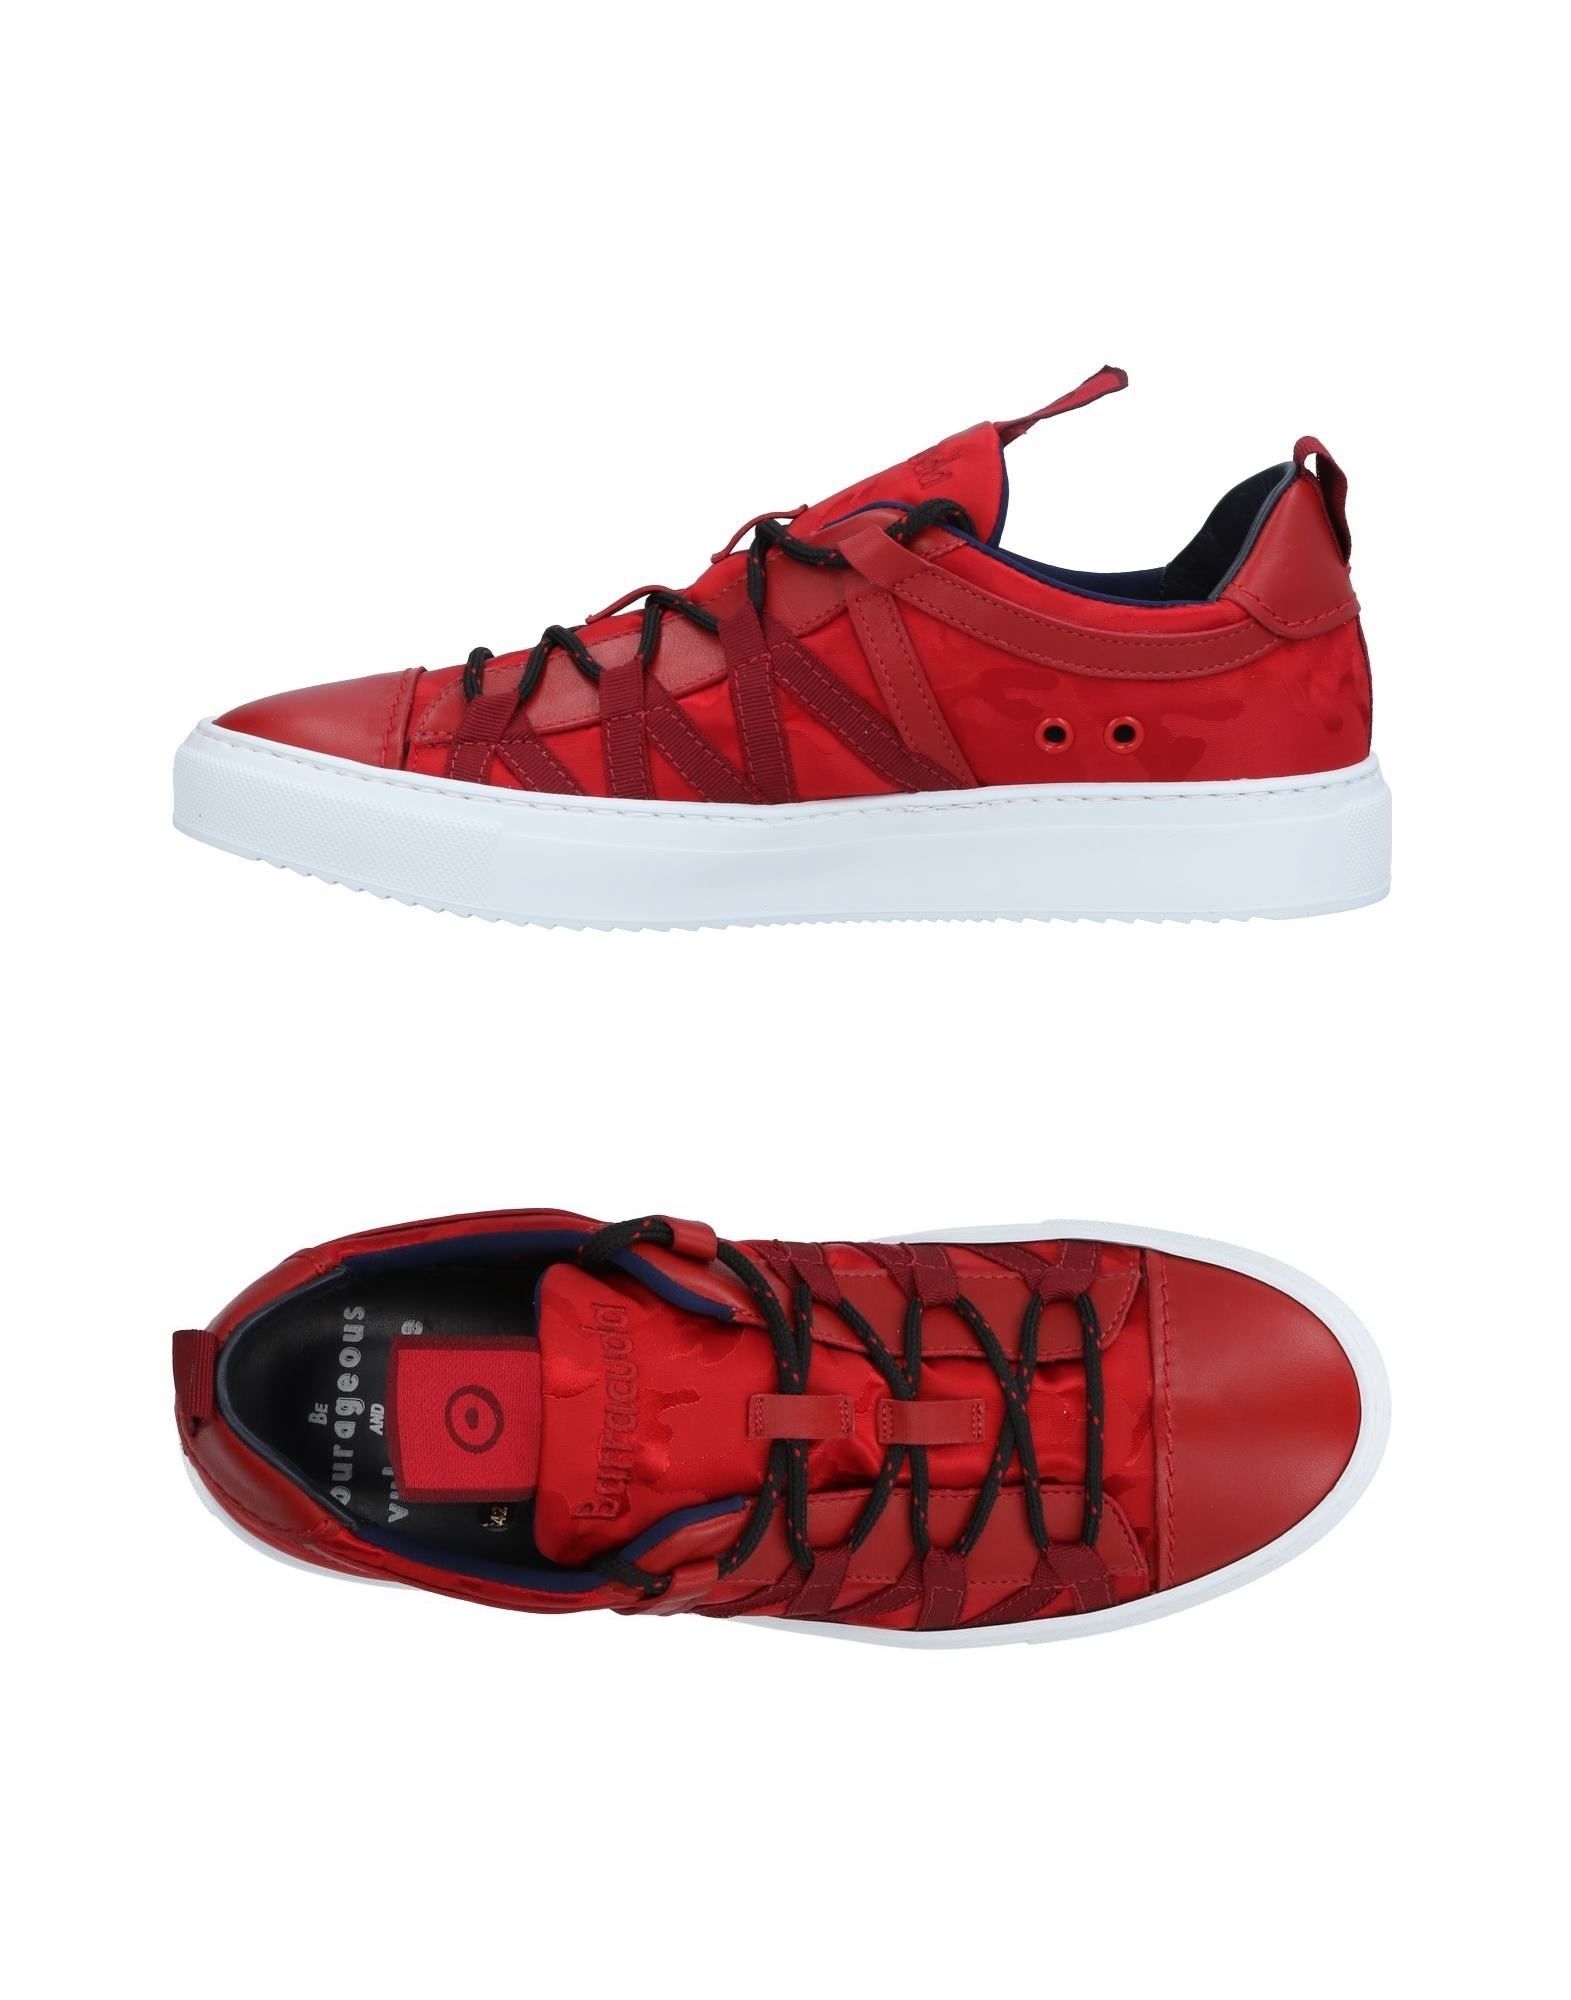 Barracuda Sneakers United - Men Barracuda Sneakers online on  United Sneakers Kingdom - 11376381WQ 2fca9e